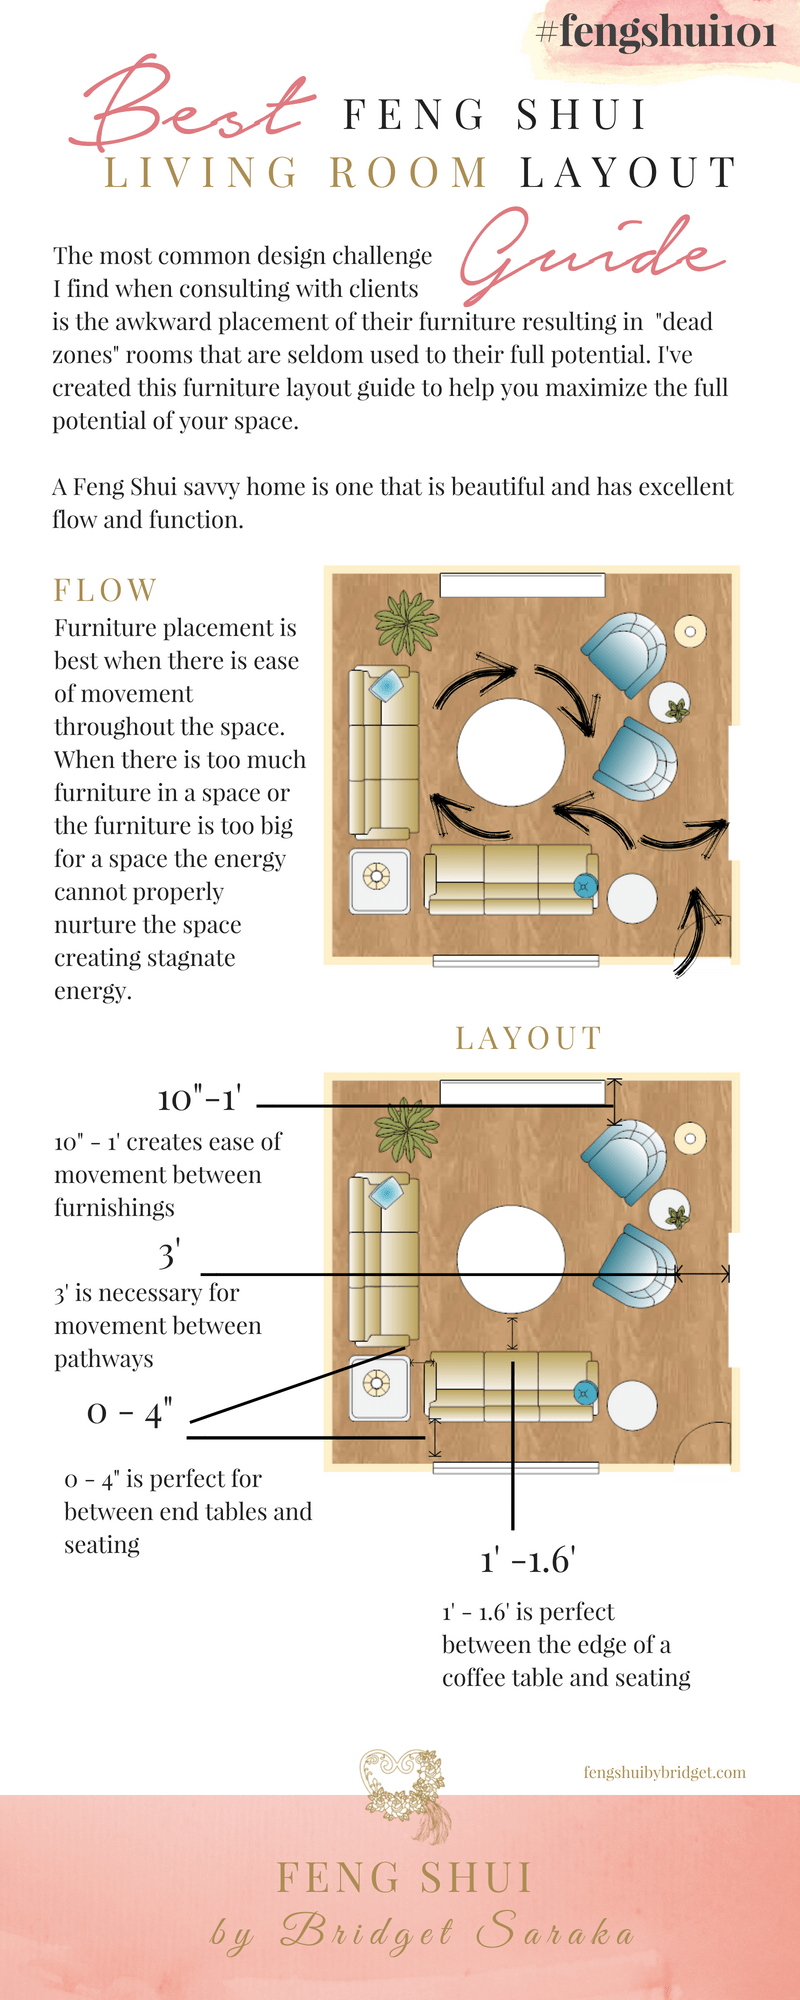 feng shui living room furniture placement wall art decor the best layout guide fengshui101 by bridget